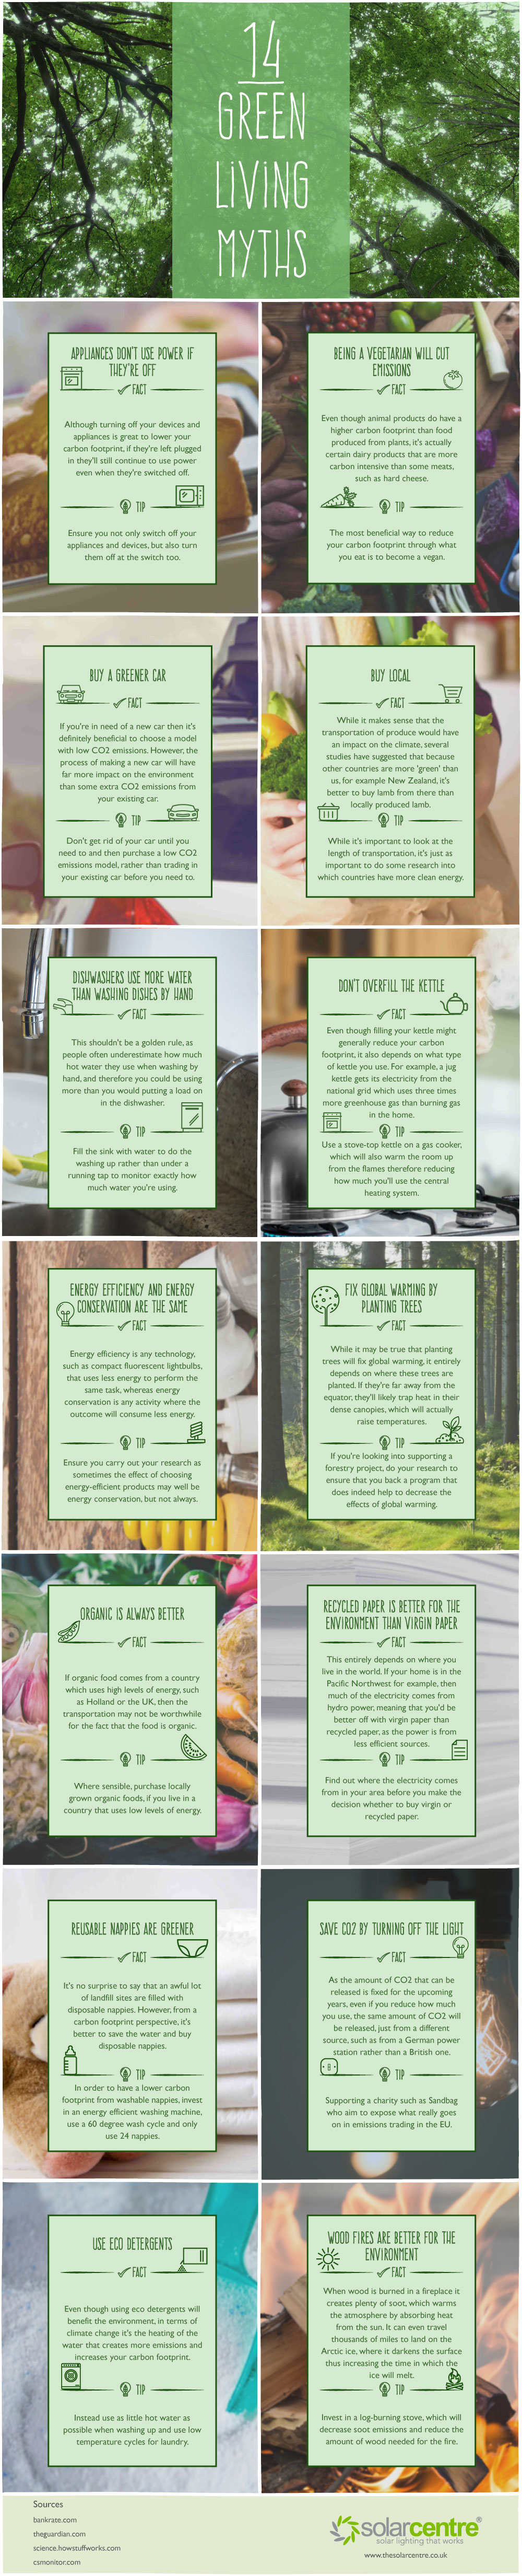 How to Reduce Your Personal Carbon Footprint: The Truth Behind 14 Green Myths - Infographic